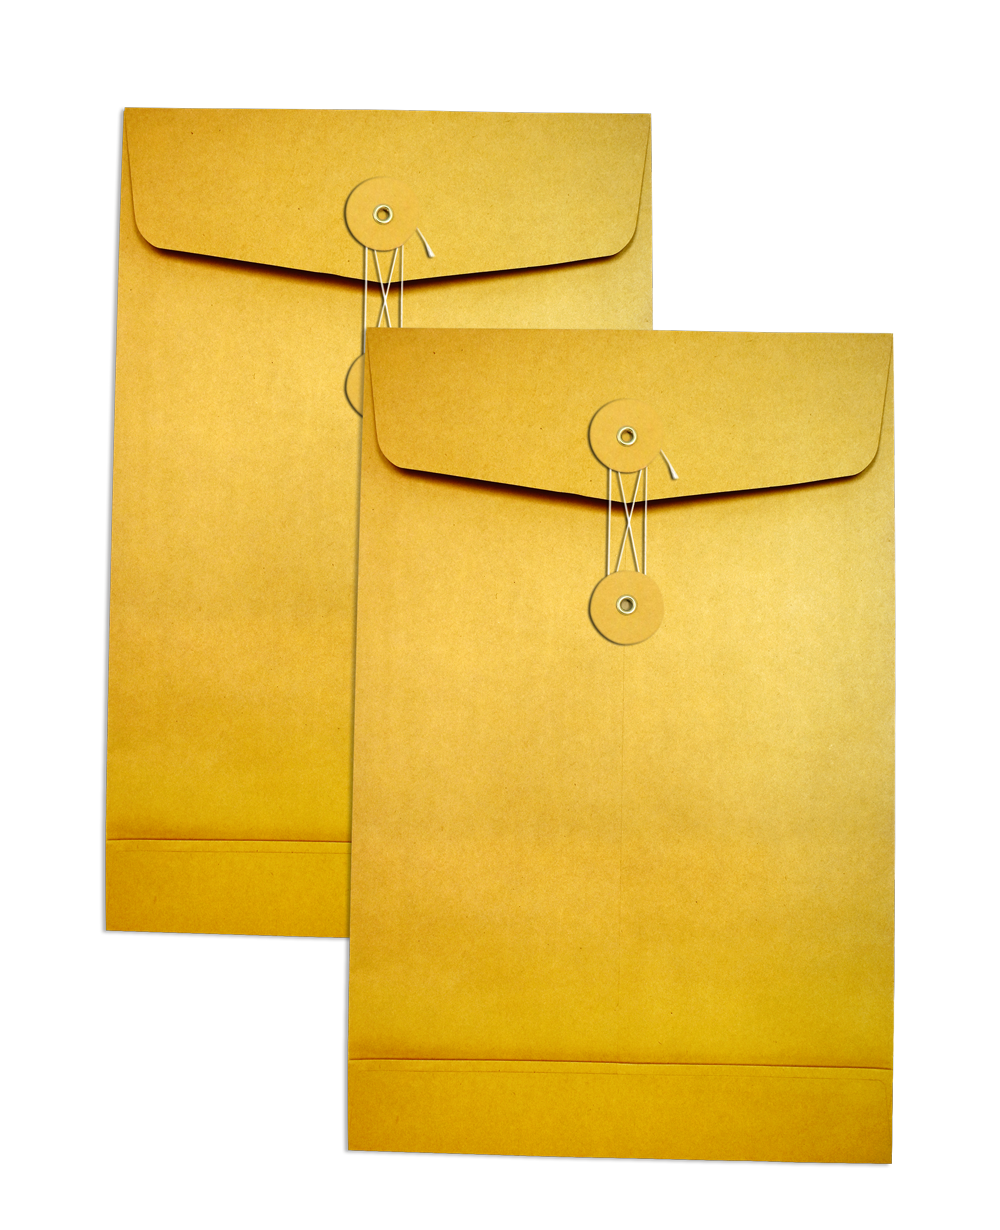 KA Enlarge Envelope No. 11 x 17 Eyelet & String